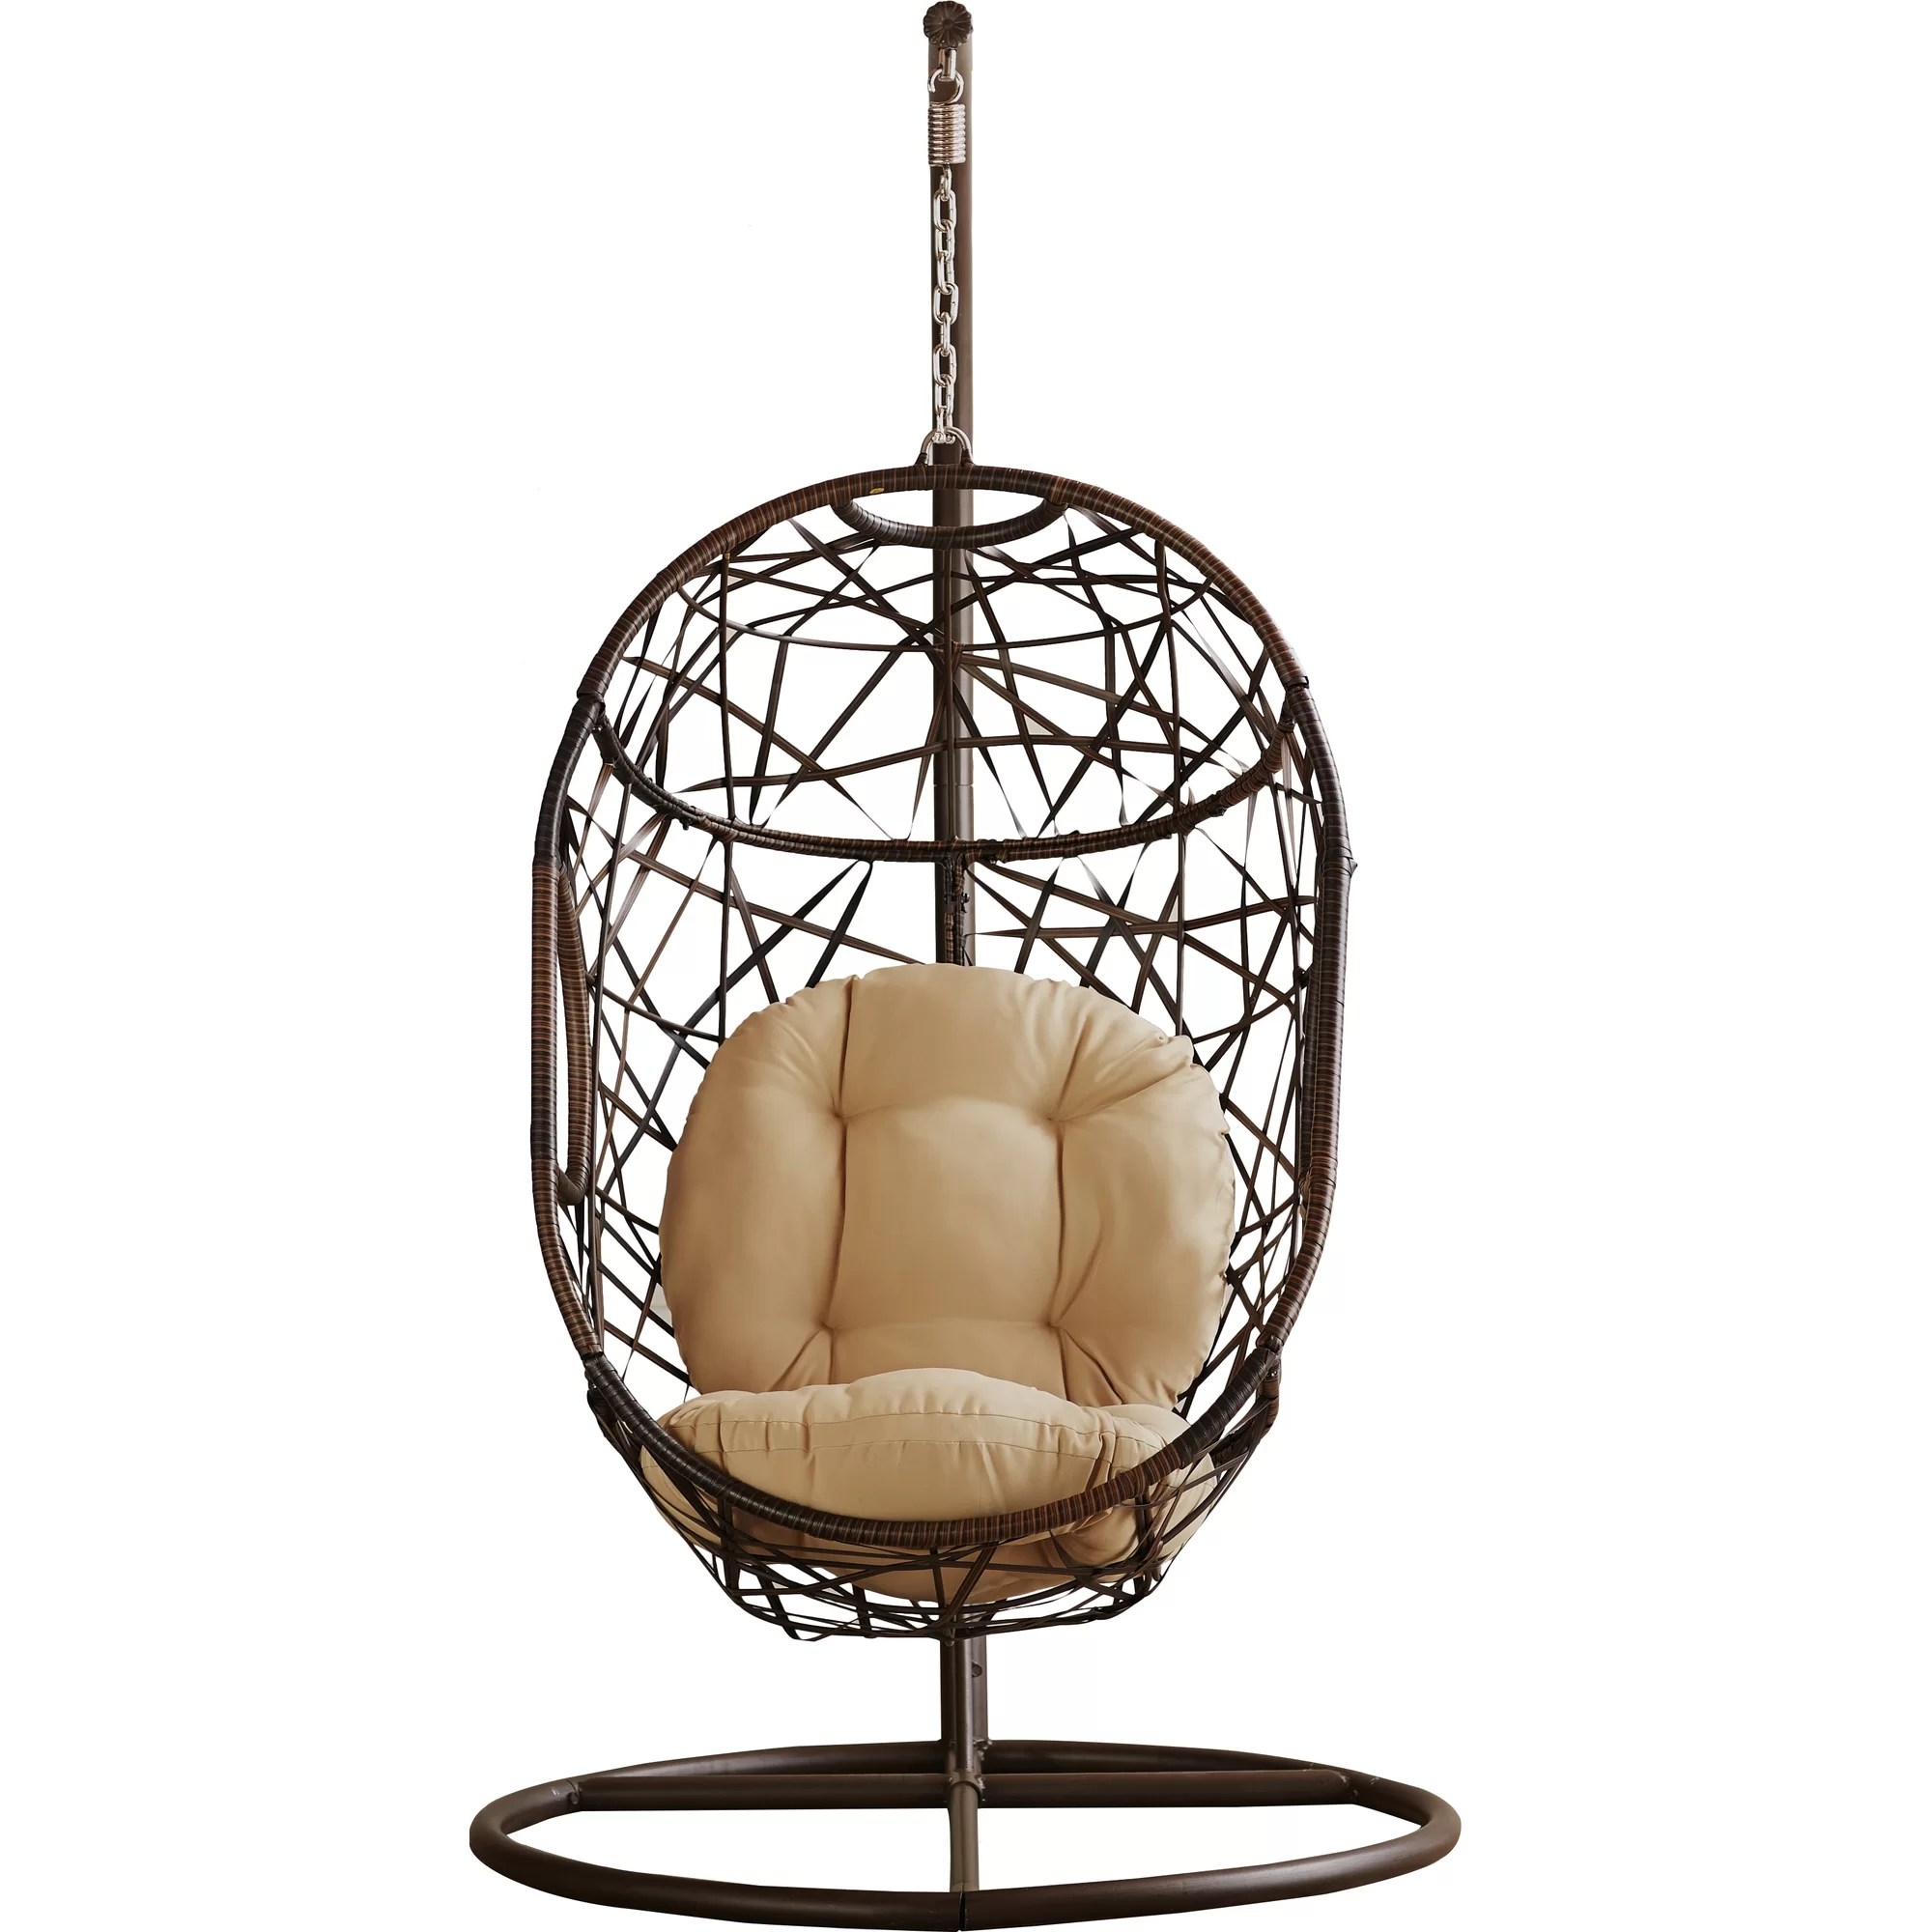 Egg Shaped Chairs Bay Isle Home Duncombe Egg Shaped Outdoor Swing Chair With